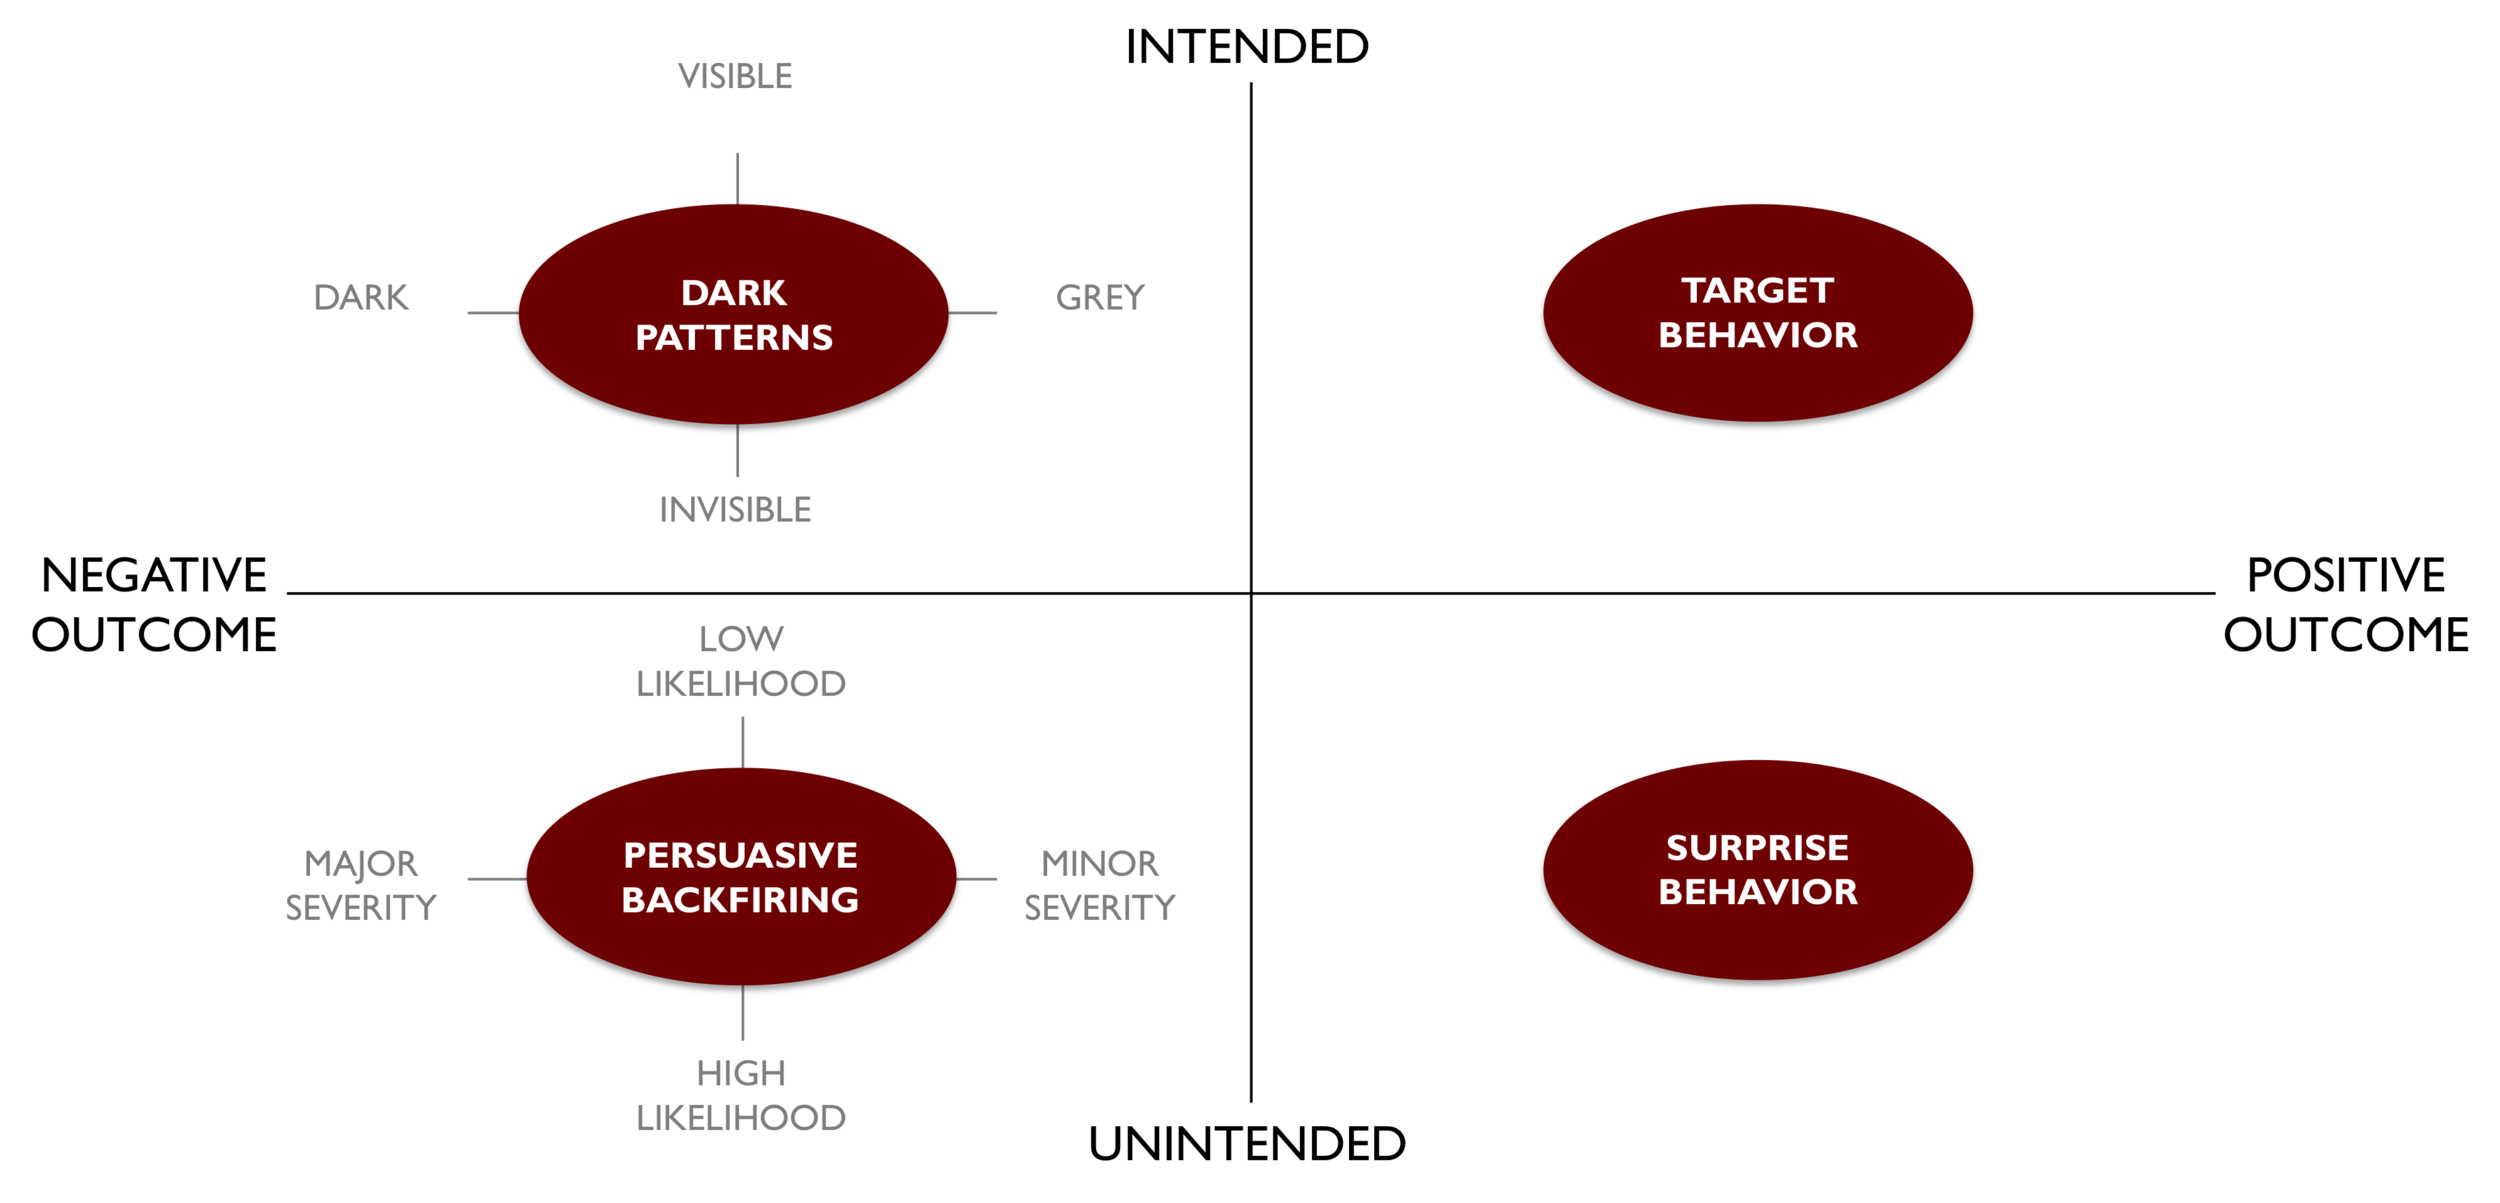 Intention-Outcome matrix adopted from  Stibe and Cugelman .